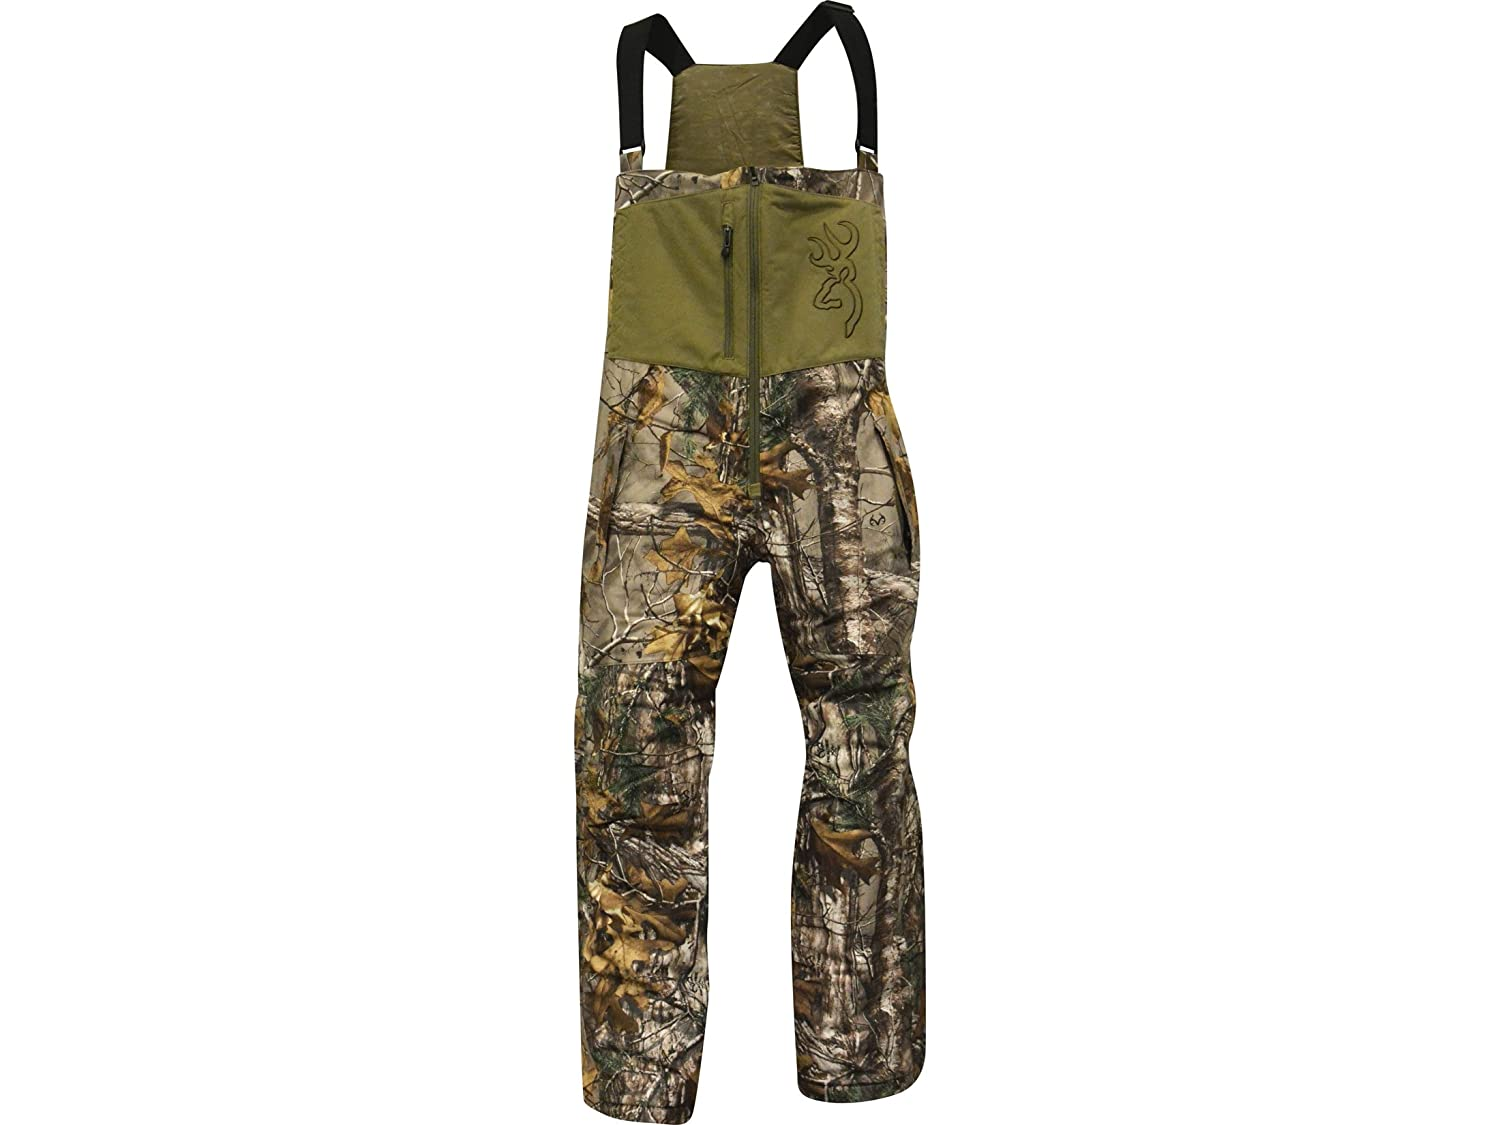 b415ea9287c83 Amazon.com : Browning Hell's Canyon BTU Insulated Bib : Sports & Outdoors